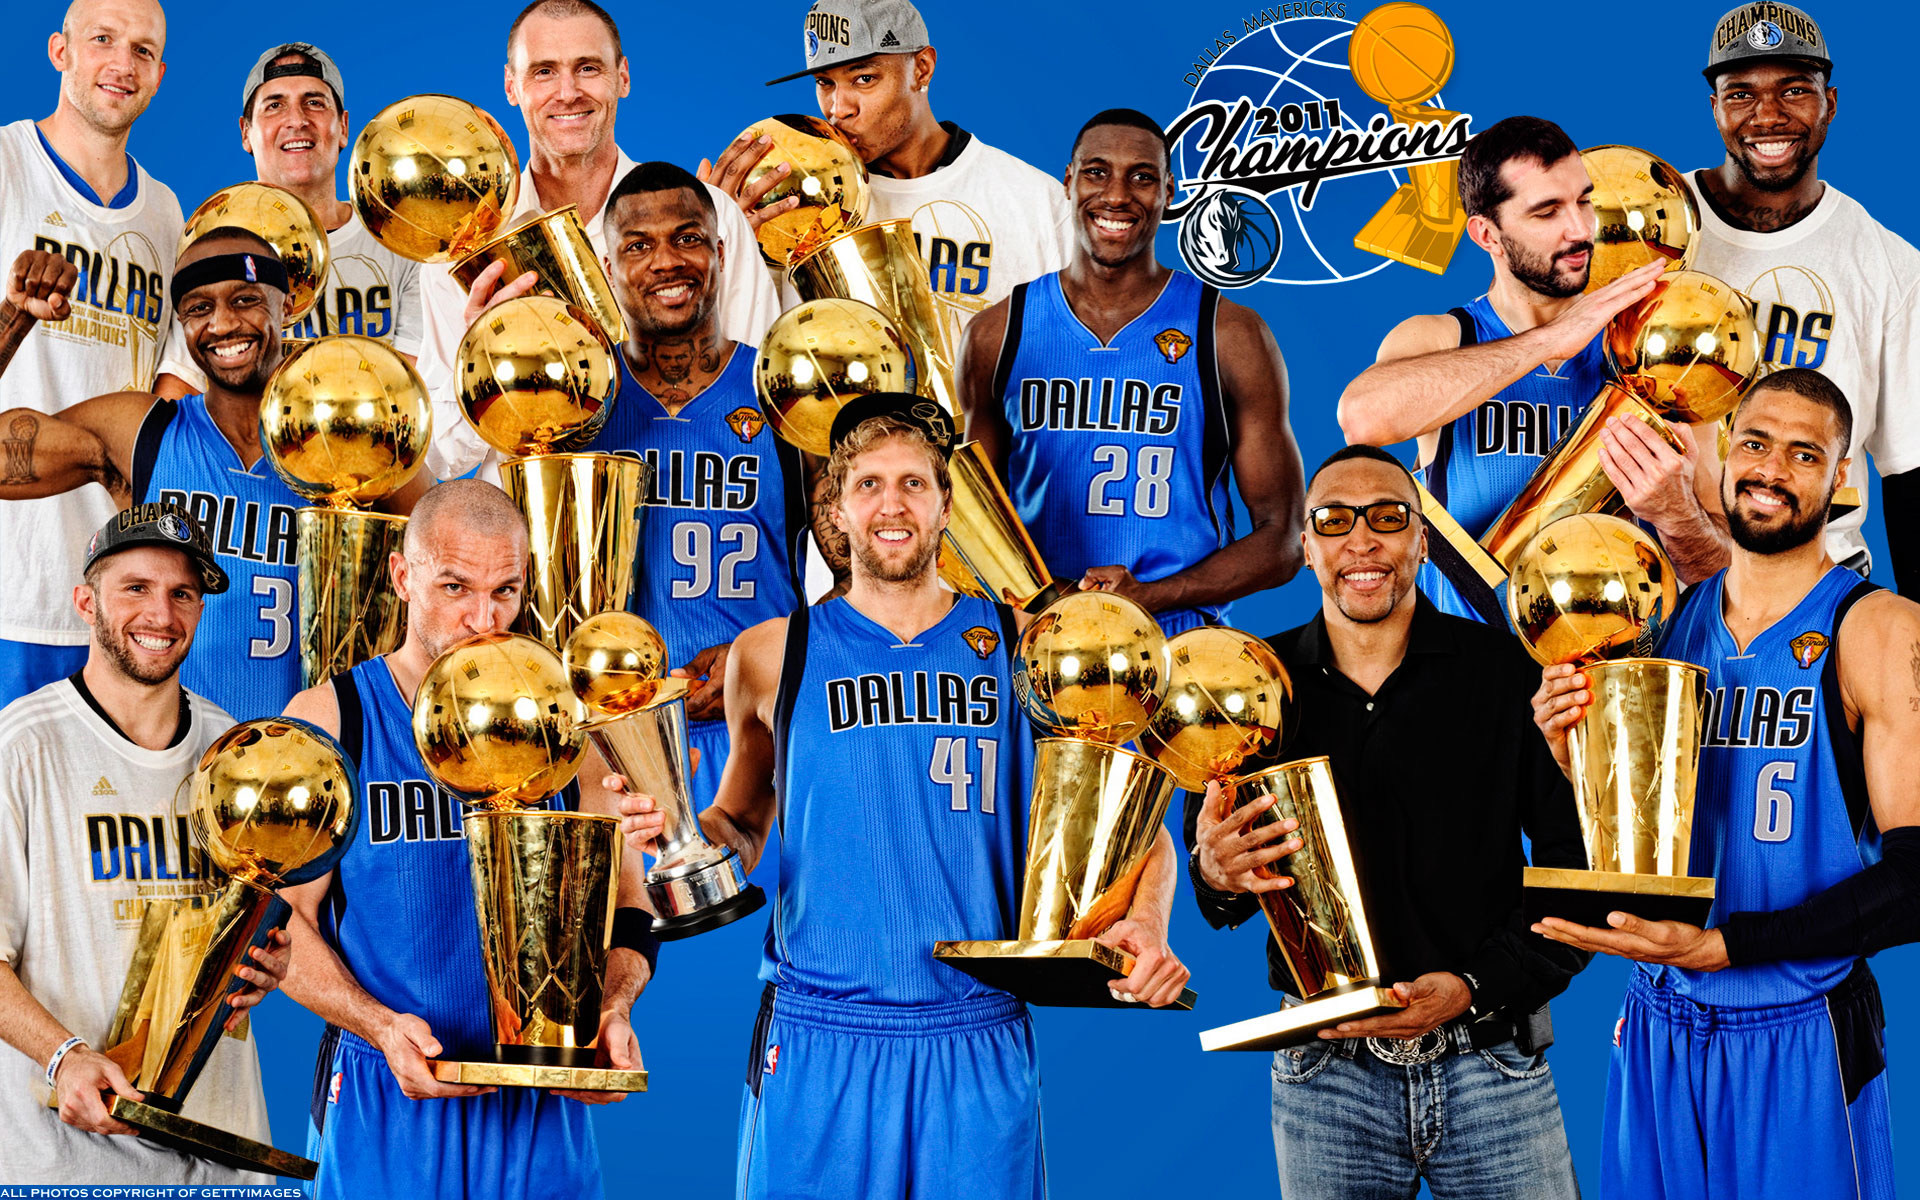 Dallas Mavericks 2011 Players With Trophies Widescreen Wallpaper